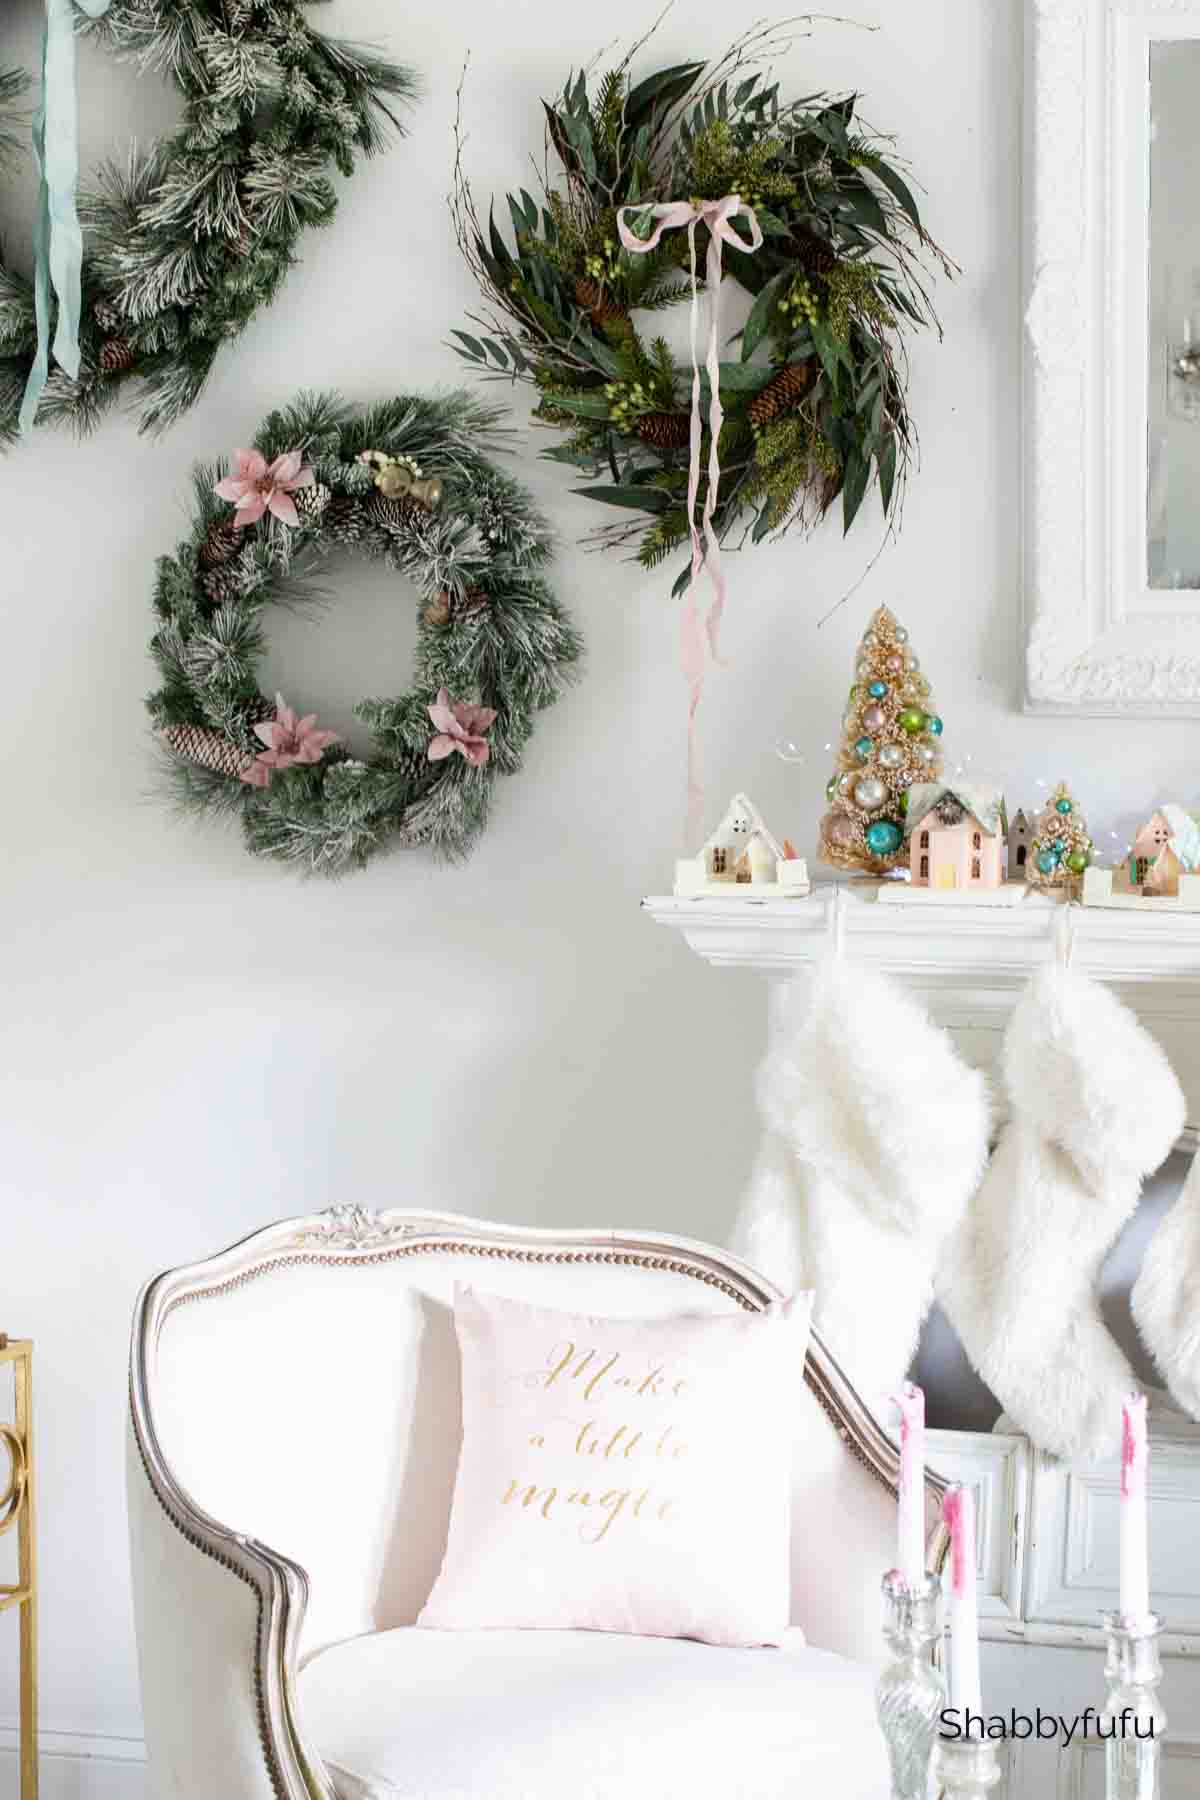 three Christmas wreaths hanging beside a mantel decorated with bottlebrush trees and paper houses